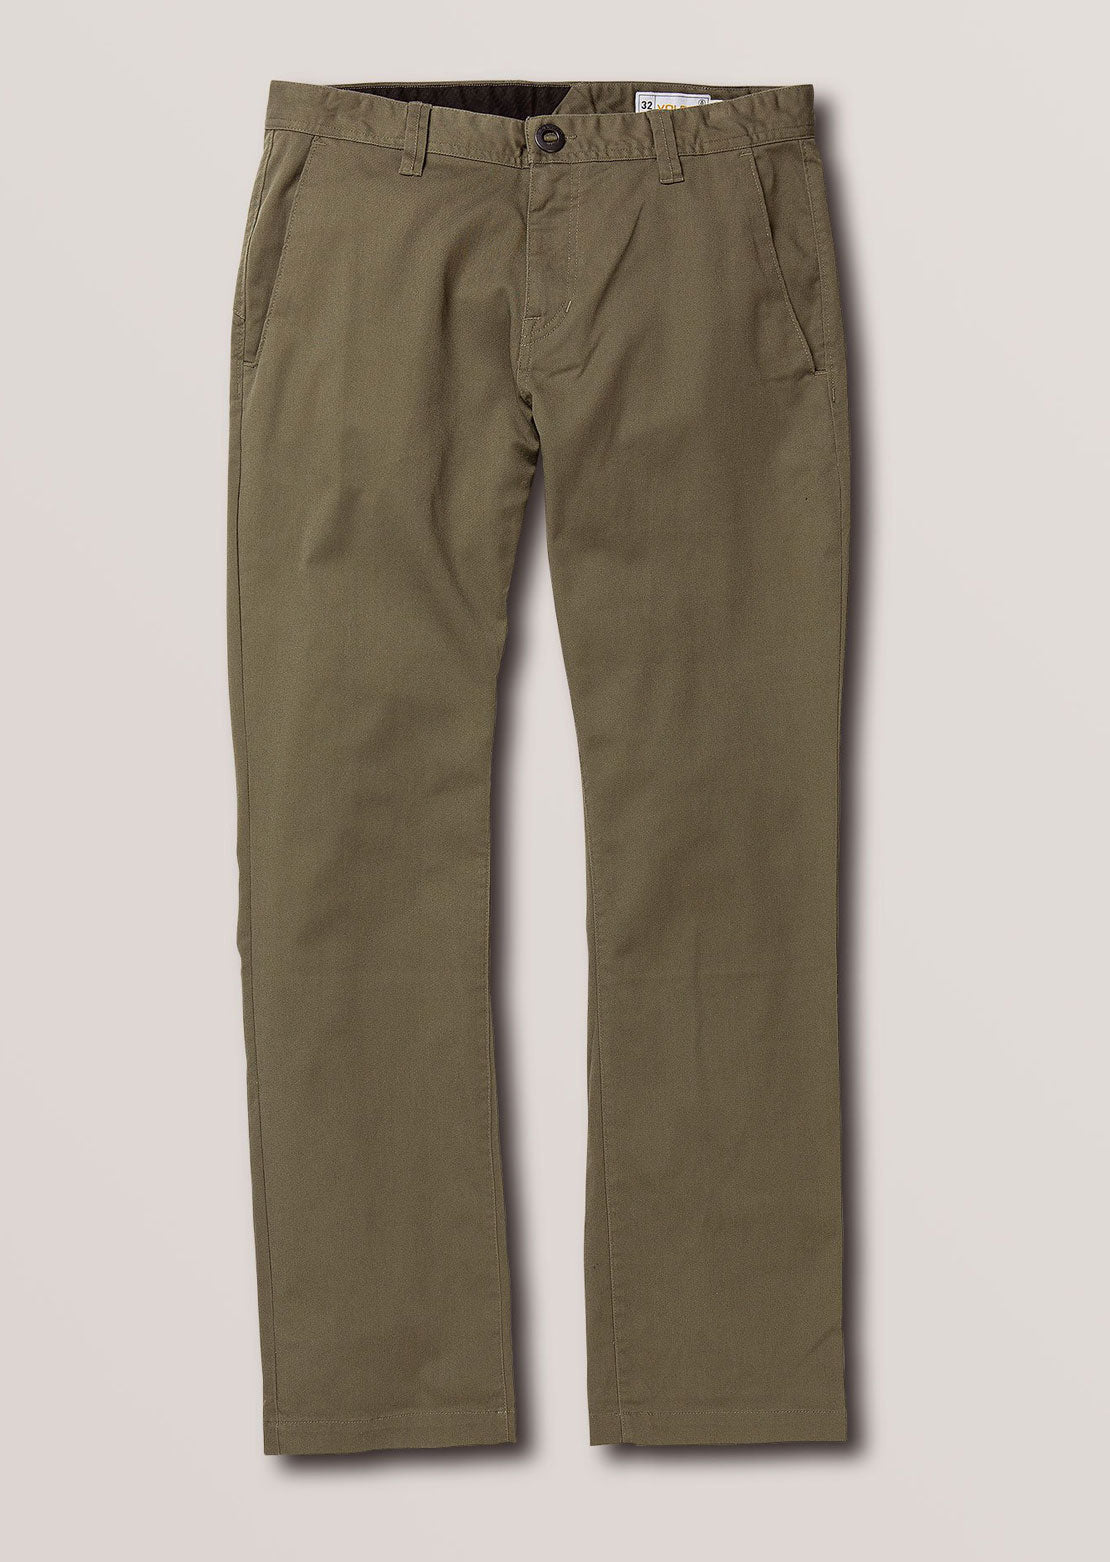 Volcom Men's Frickin Modern Stretch Pants Army Green Combo